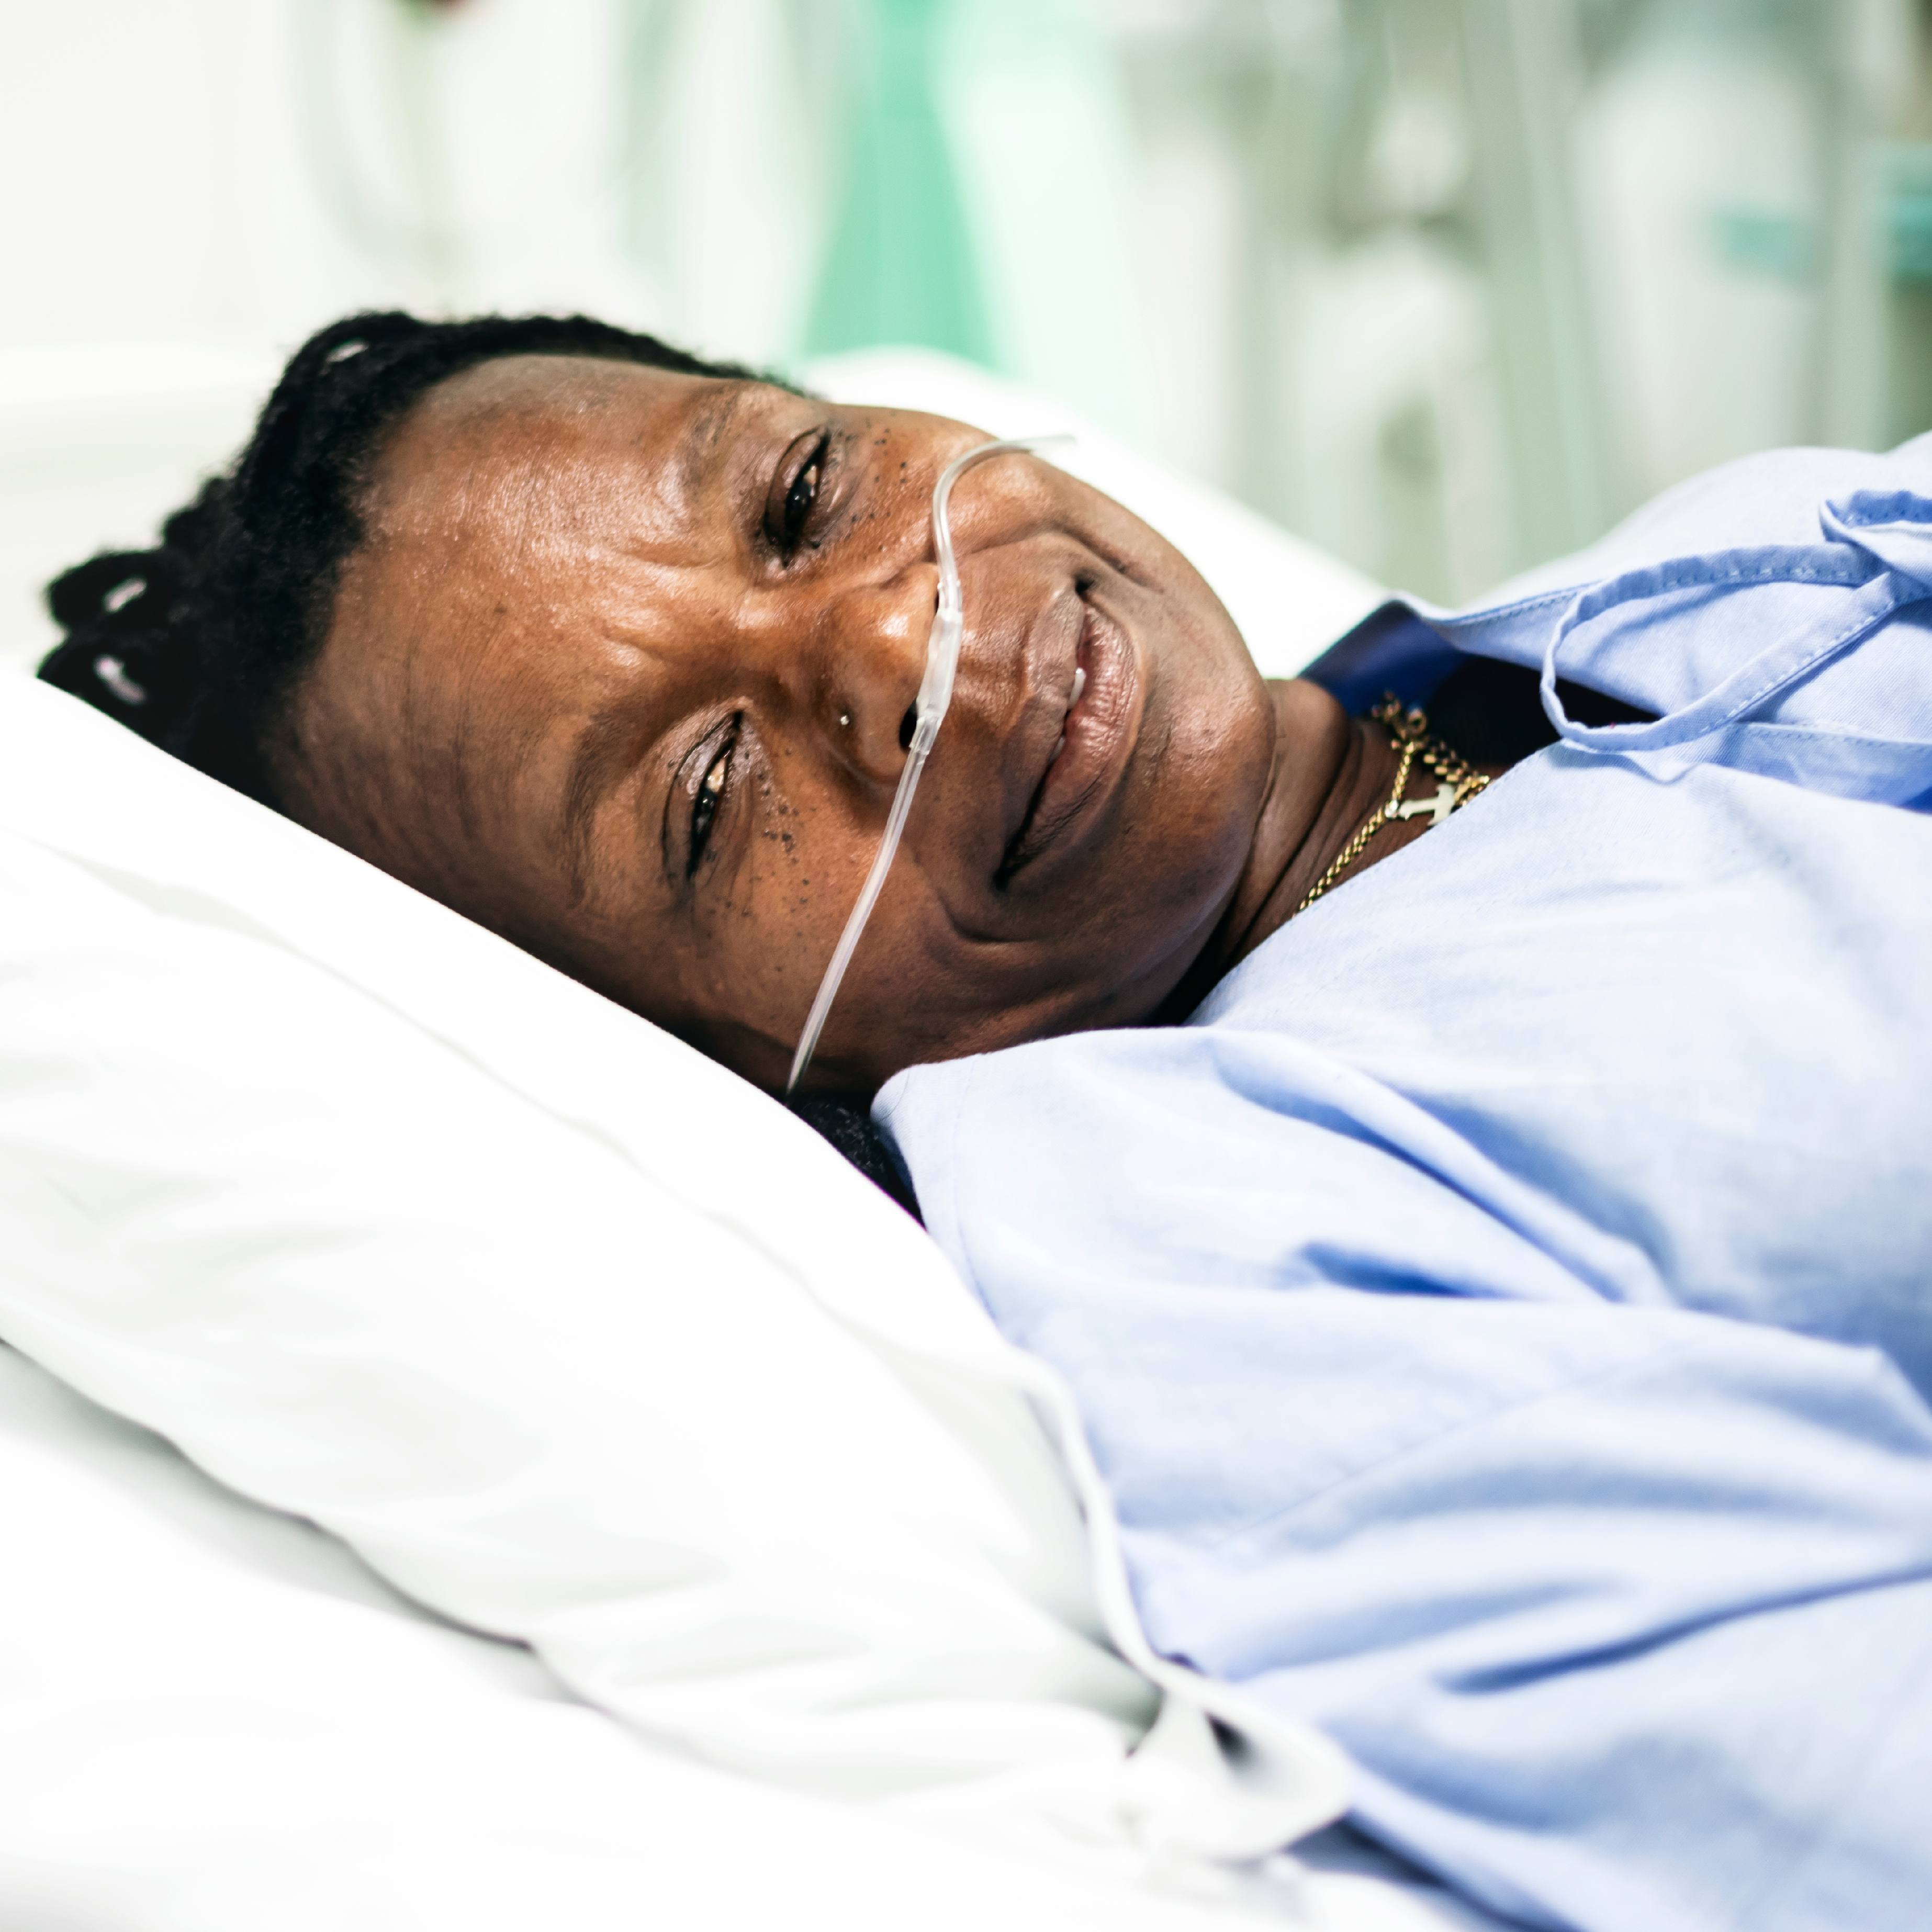 an African American woman slightly smiling in a hospital gown, resting on a pillow with oxygen tubes in her nose